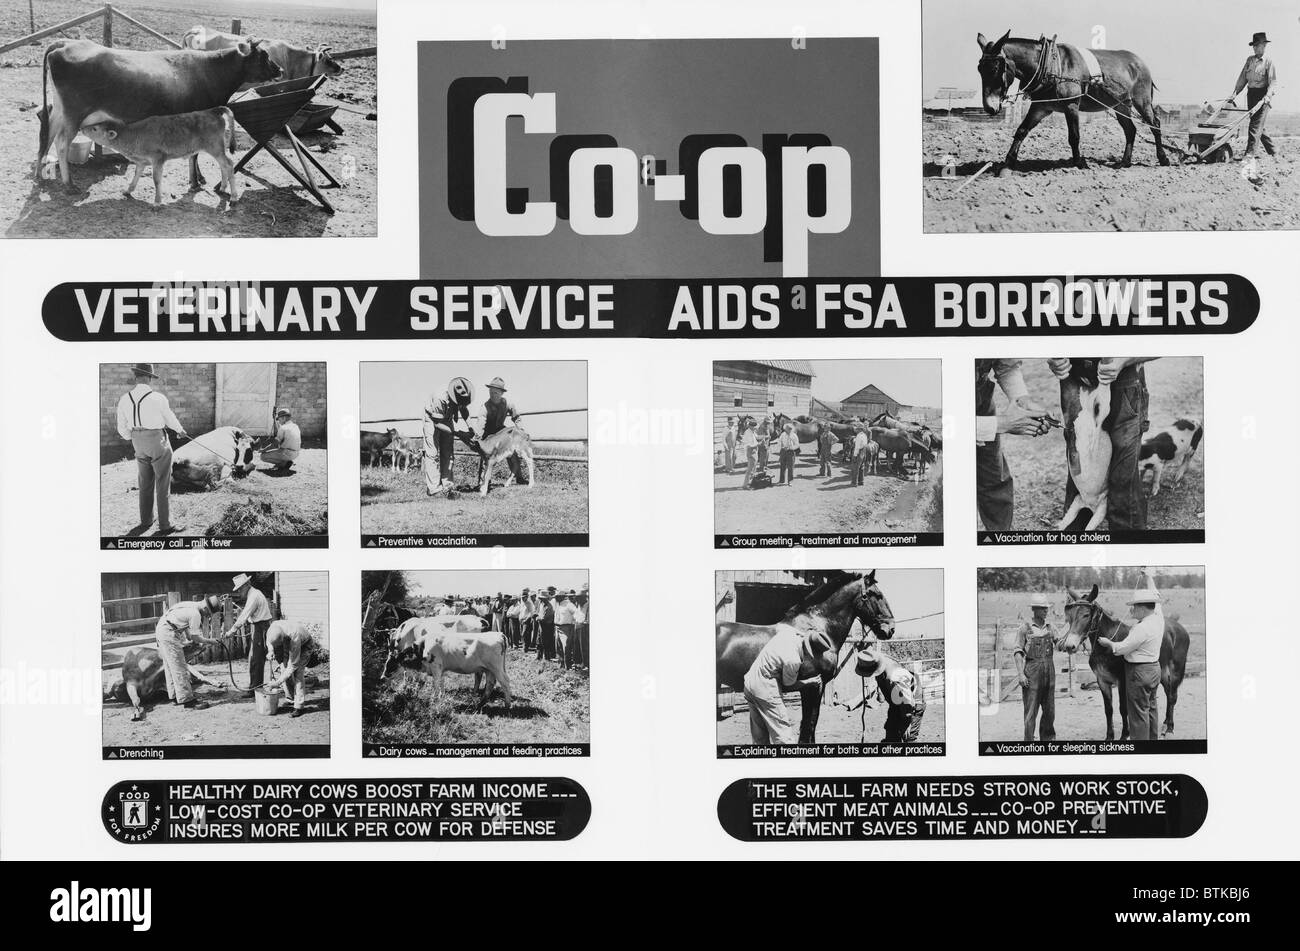 Farm Security Administration poster promoting rural cooperatives veterinary services. Poor farmers were organized - Stock Image